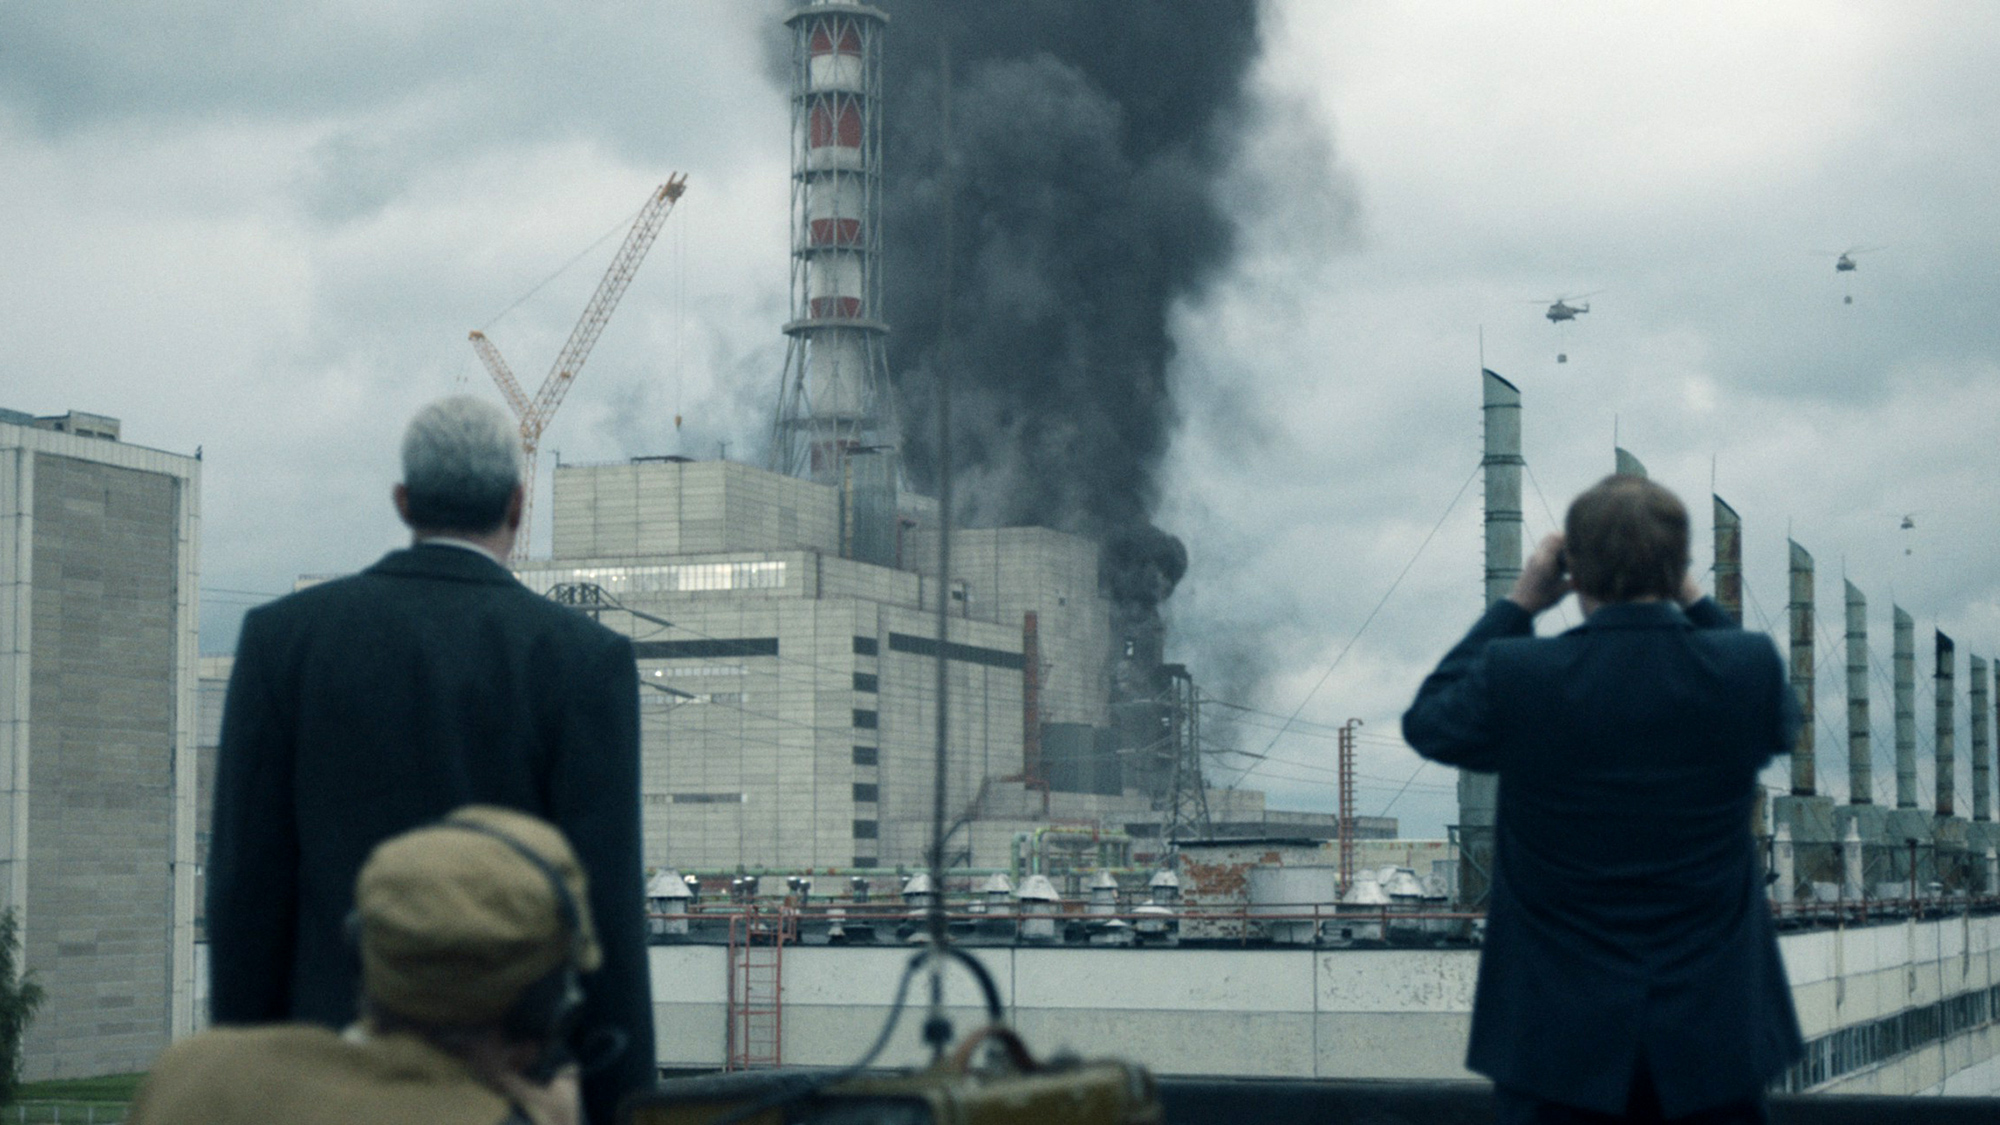 5 Weird Things You Didn't Know About Chernobyl | Live Science